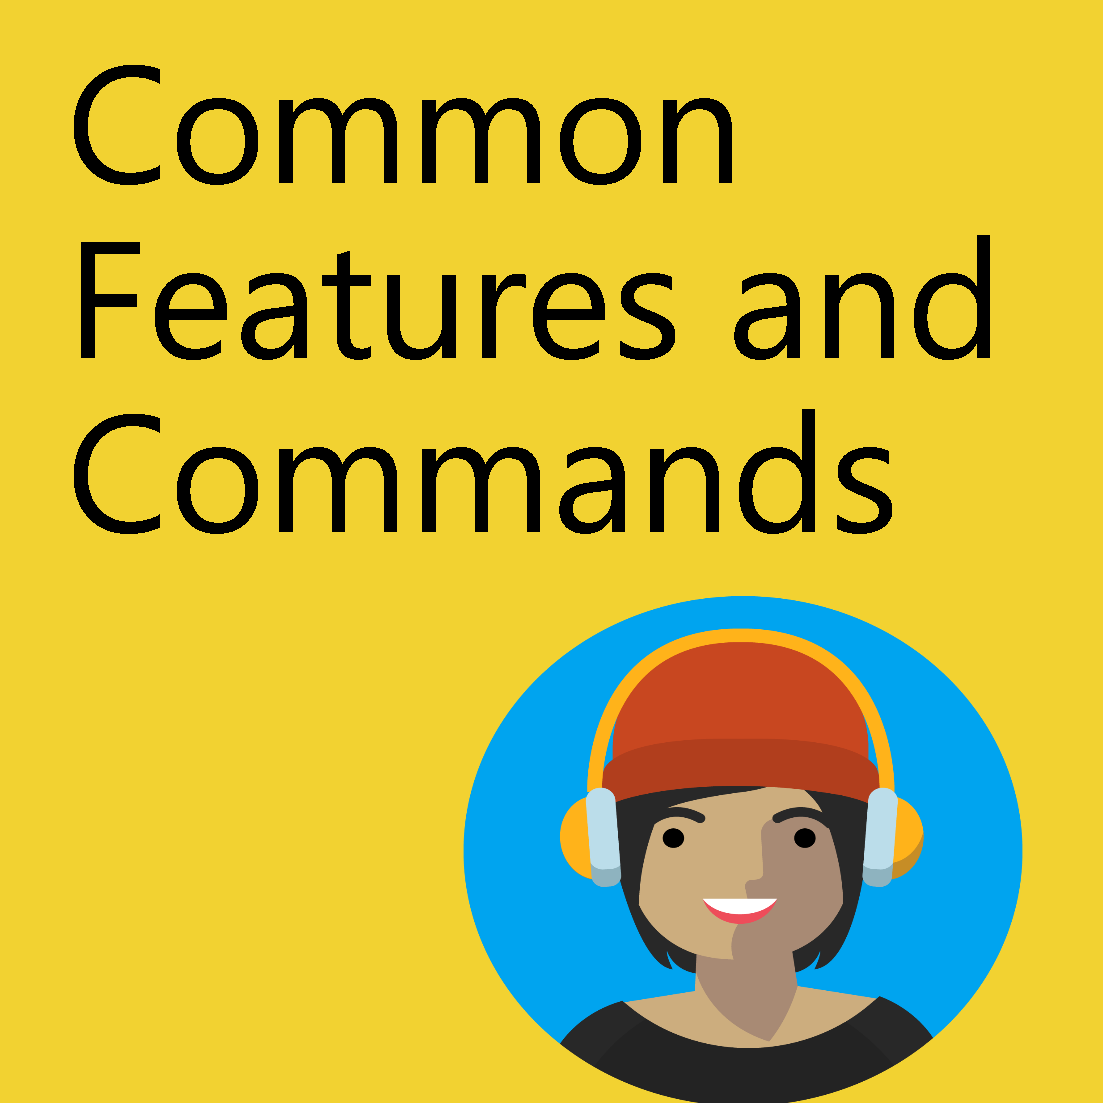 Module 2: Common Features and Commands